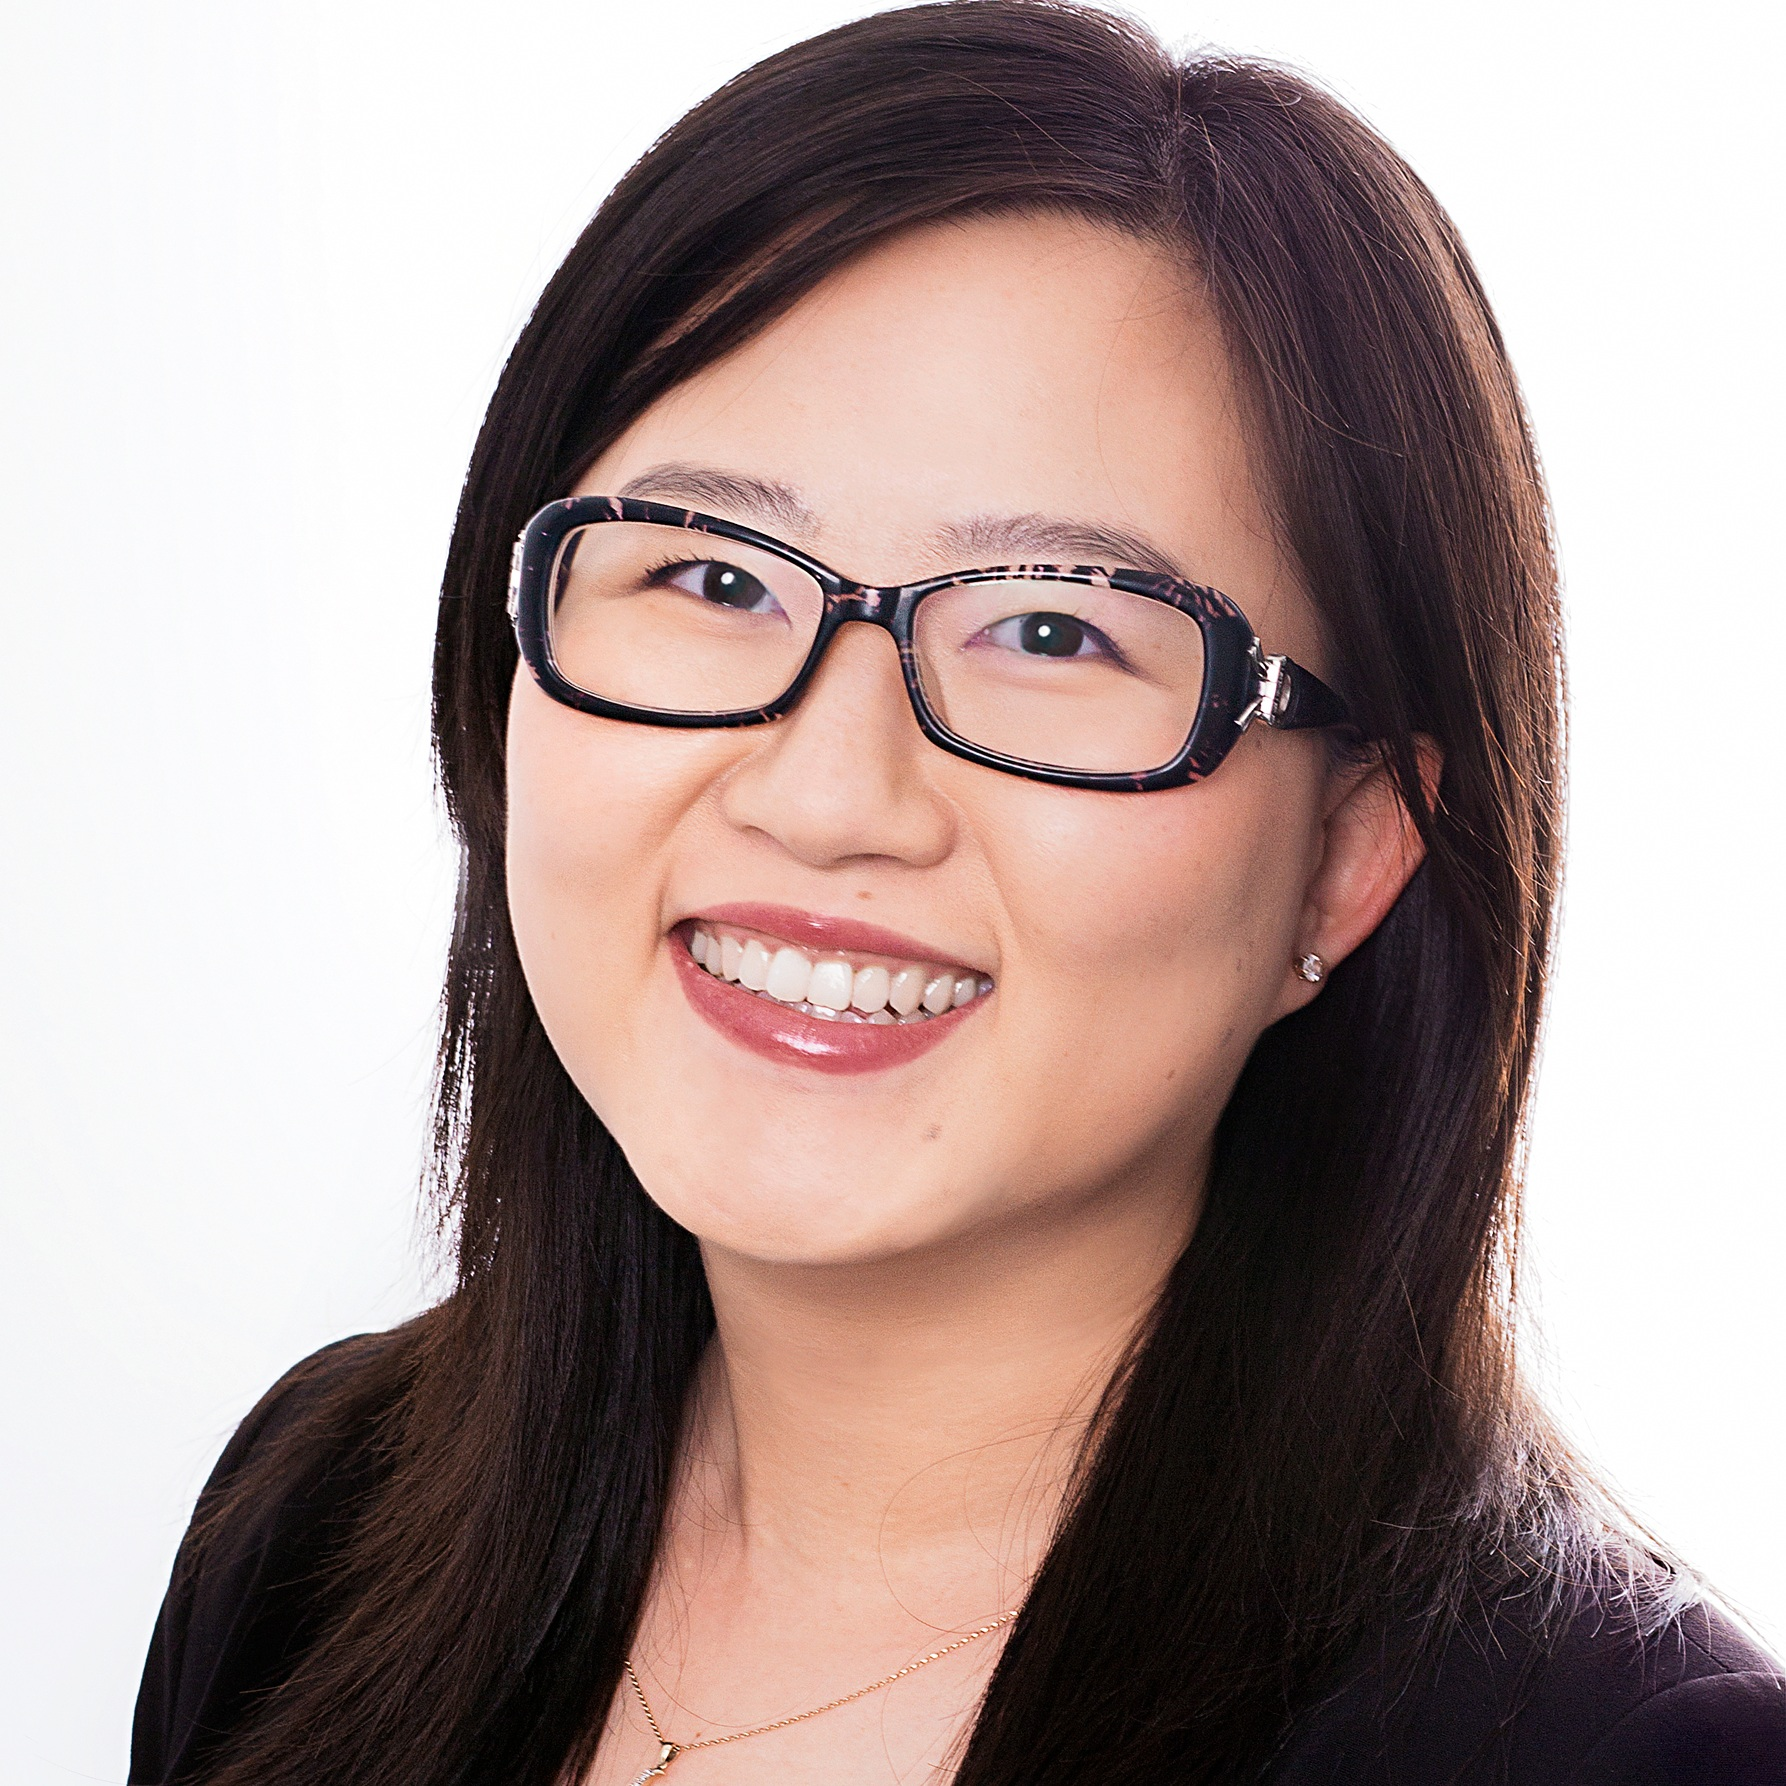 Lu Zhang. One of our many expert accountants standing by to oversee you team of bookkeepers